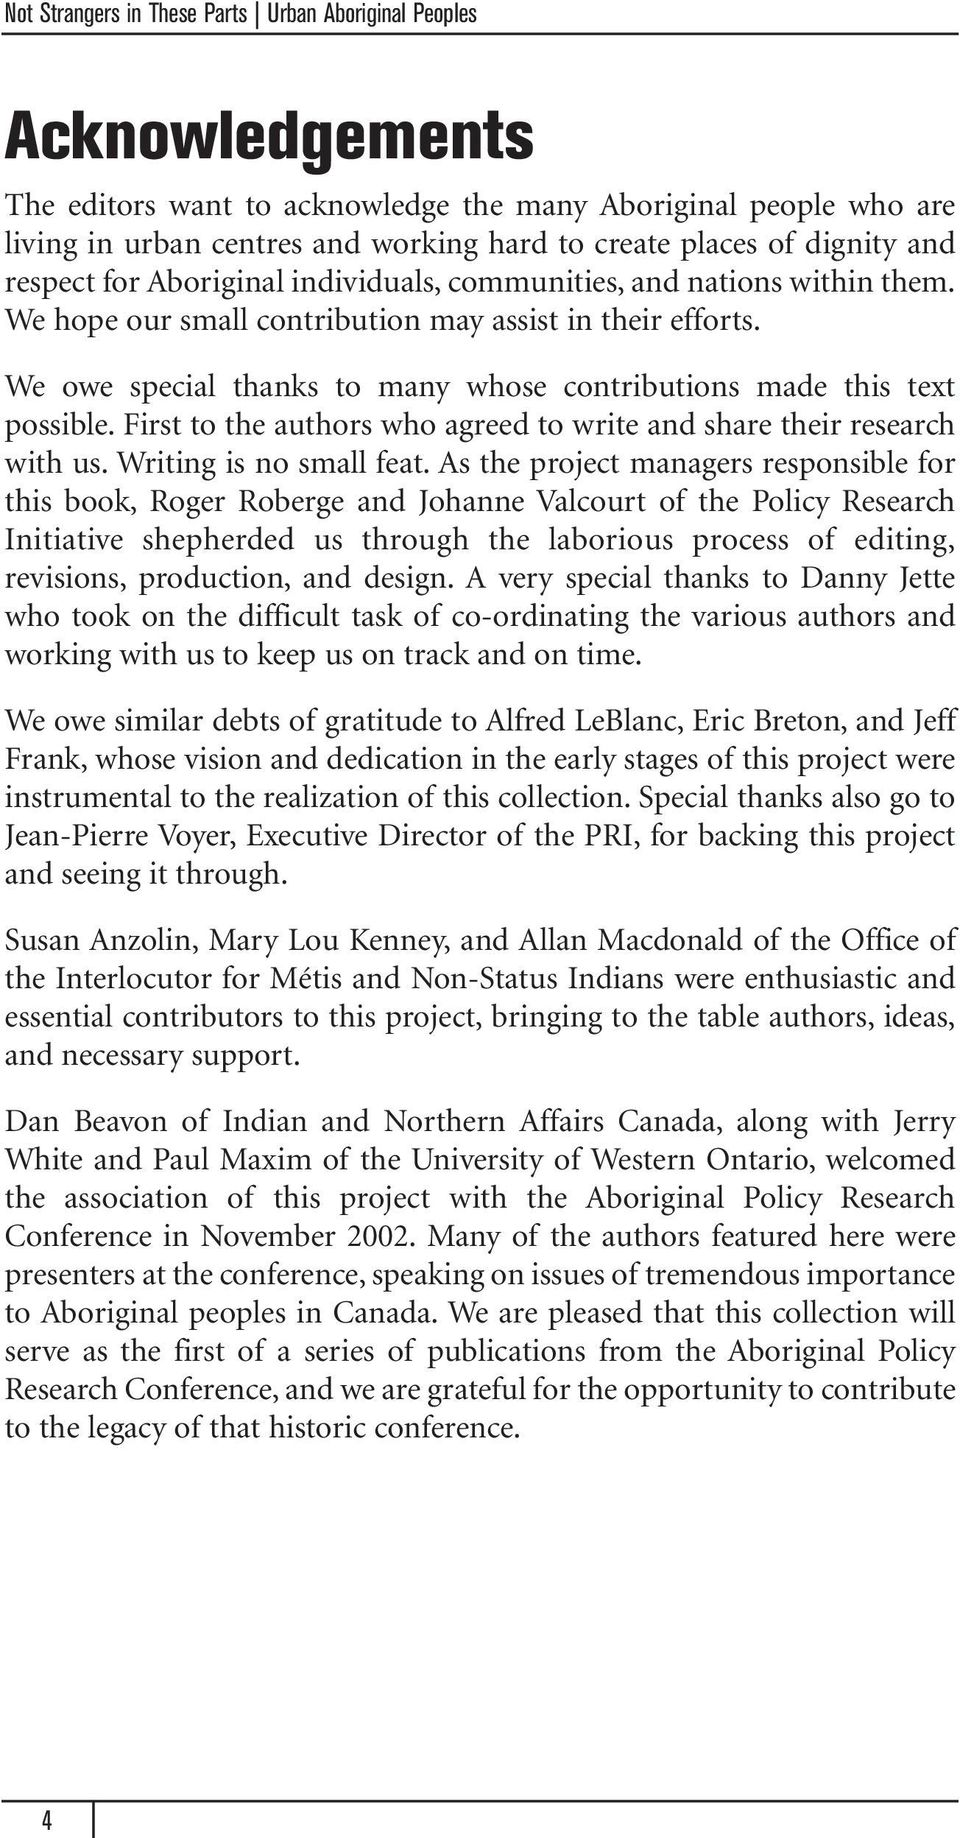 We owe special thanks to many whose contributions made this text possible. First to the authors who agreed to write and share their research with us. Writing is no small feat.